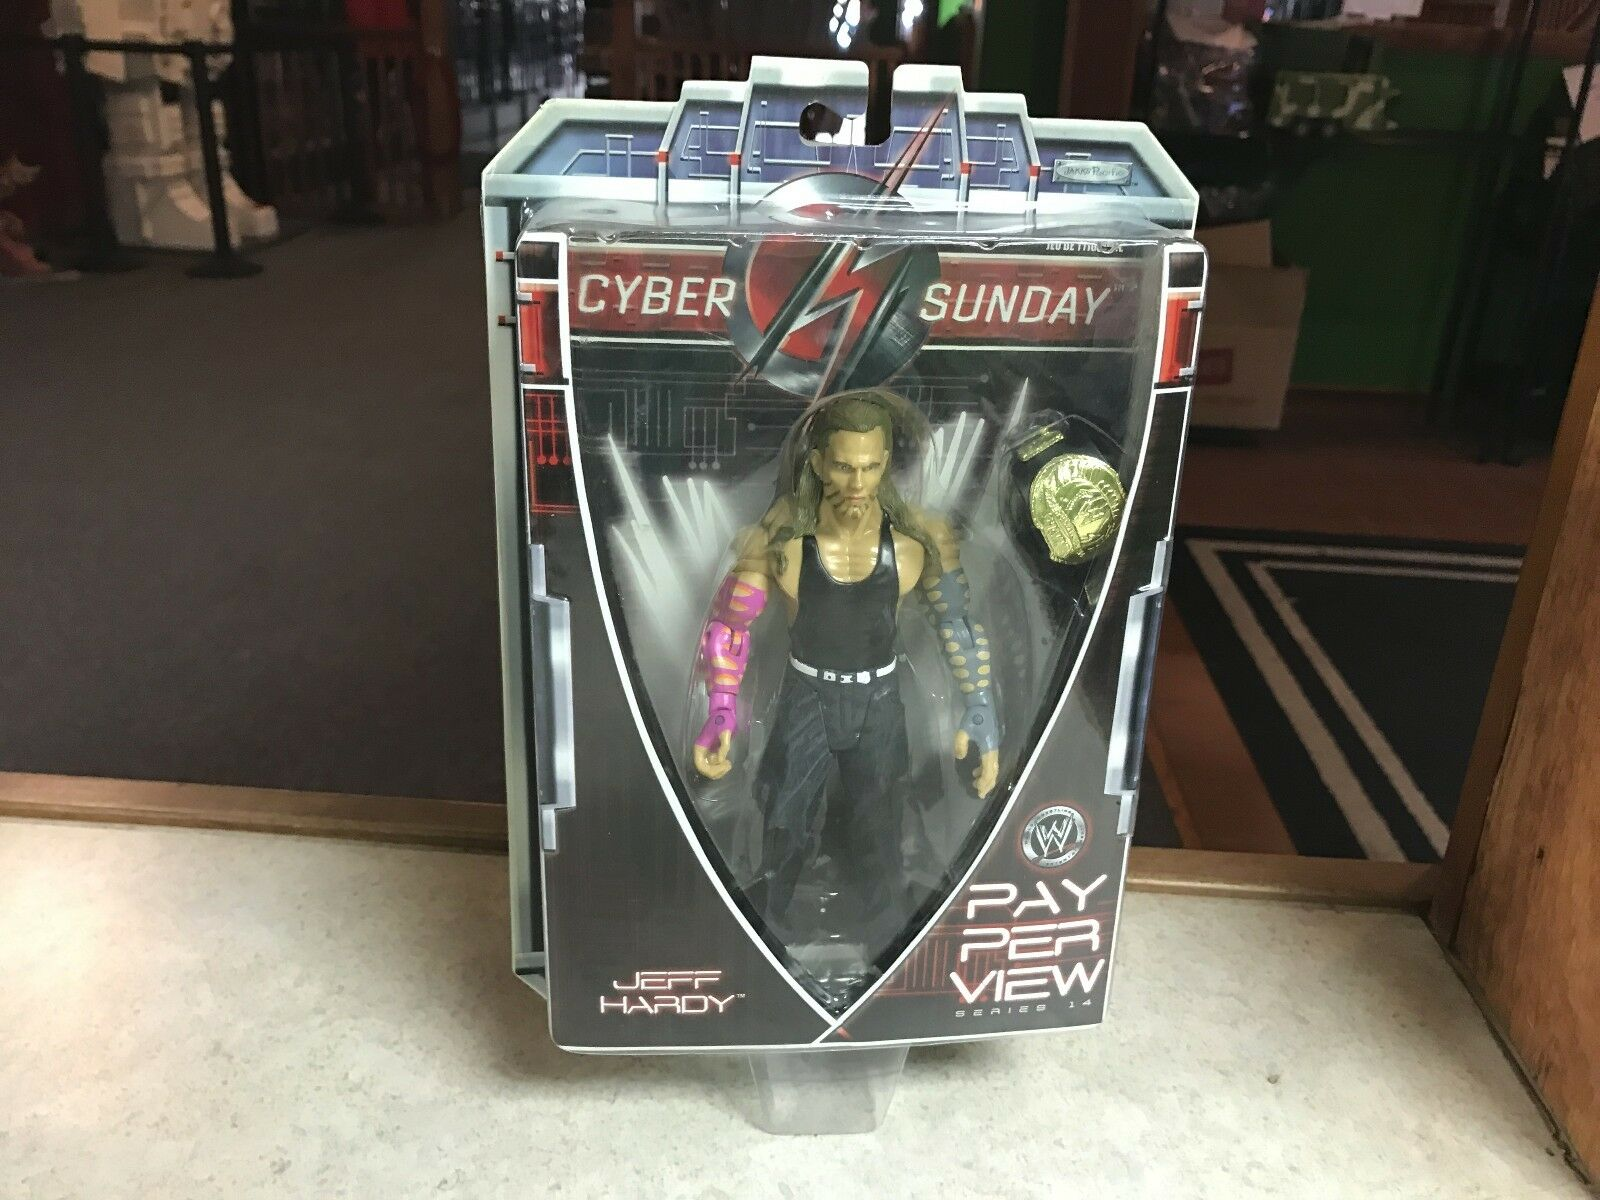 2007 Jakks Pacific Wrestling WWE Cyber Sunday Pay Per View JEFF HARDY Figure MOC